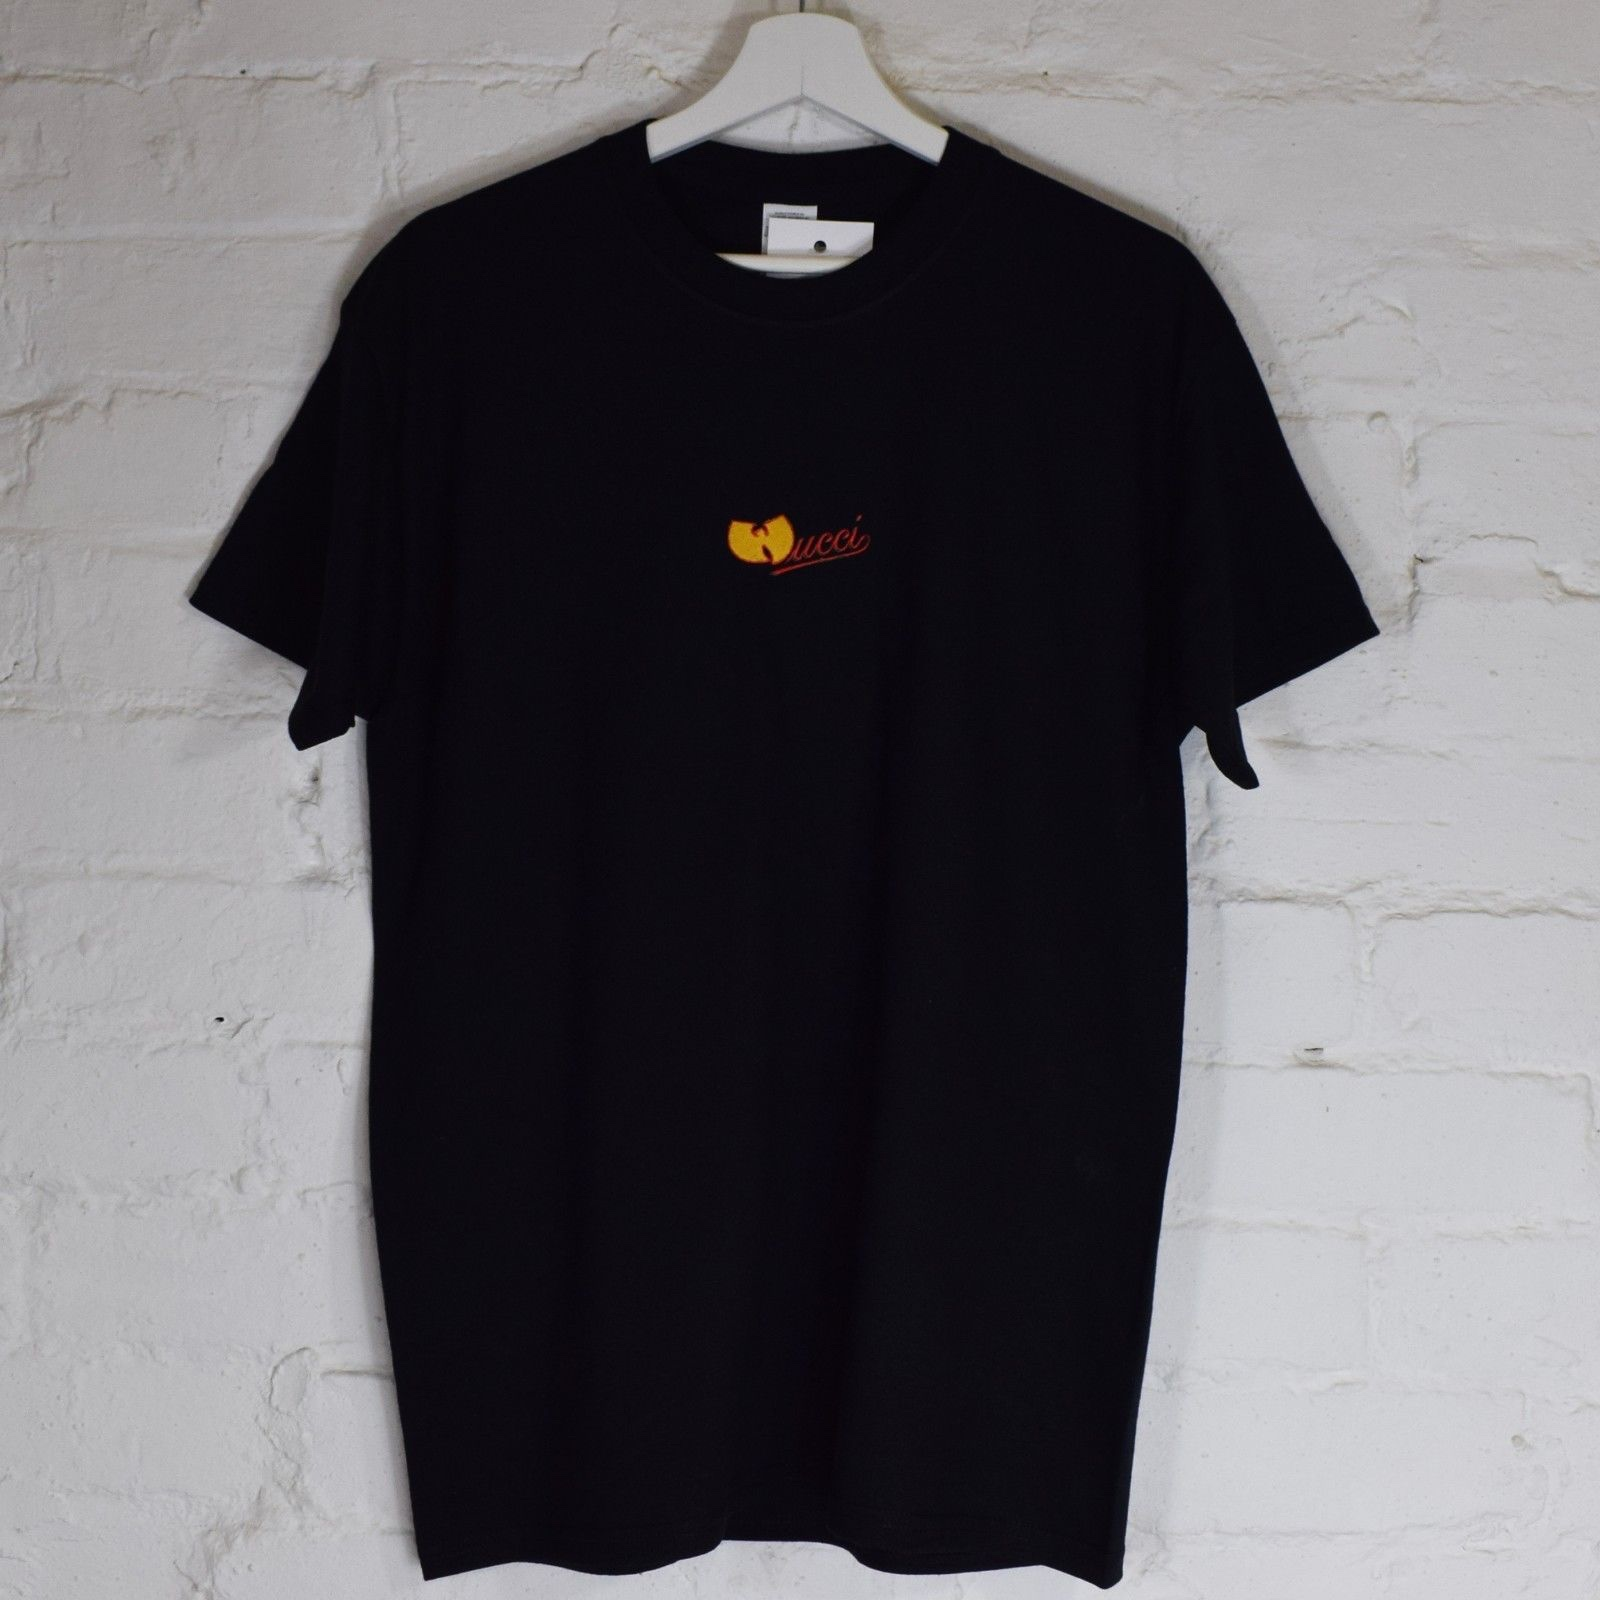 Actual Fact Wucci Embroidered Wu Tang Clan White Tee T-Shirt